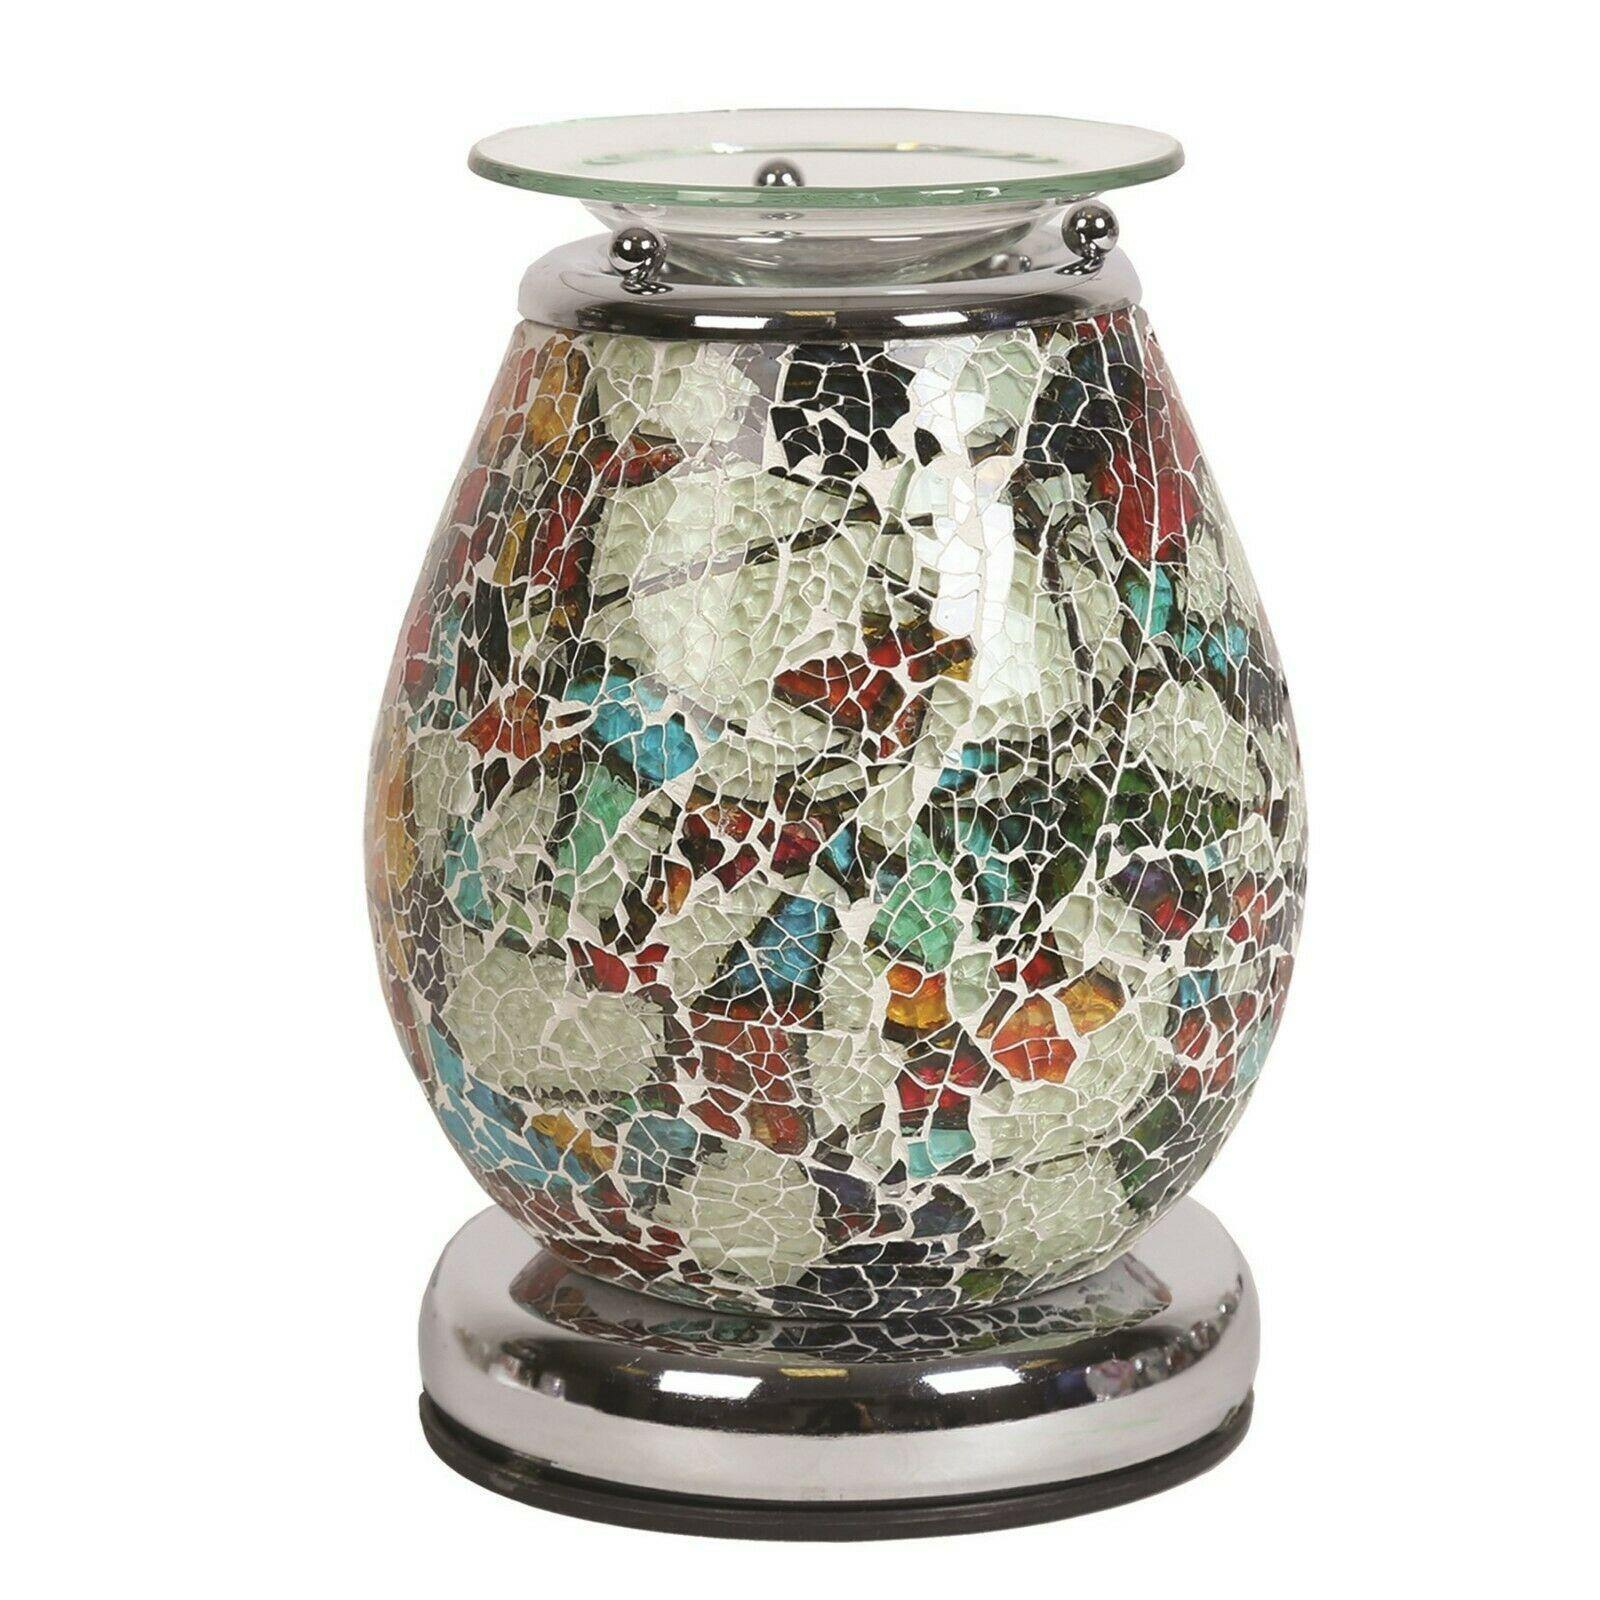 Aroma Accessories Mercury Mosaic Touch Electric Wax Melt Warmer - TOSYS Candles and Gifts